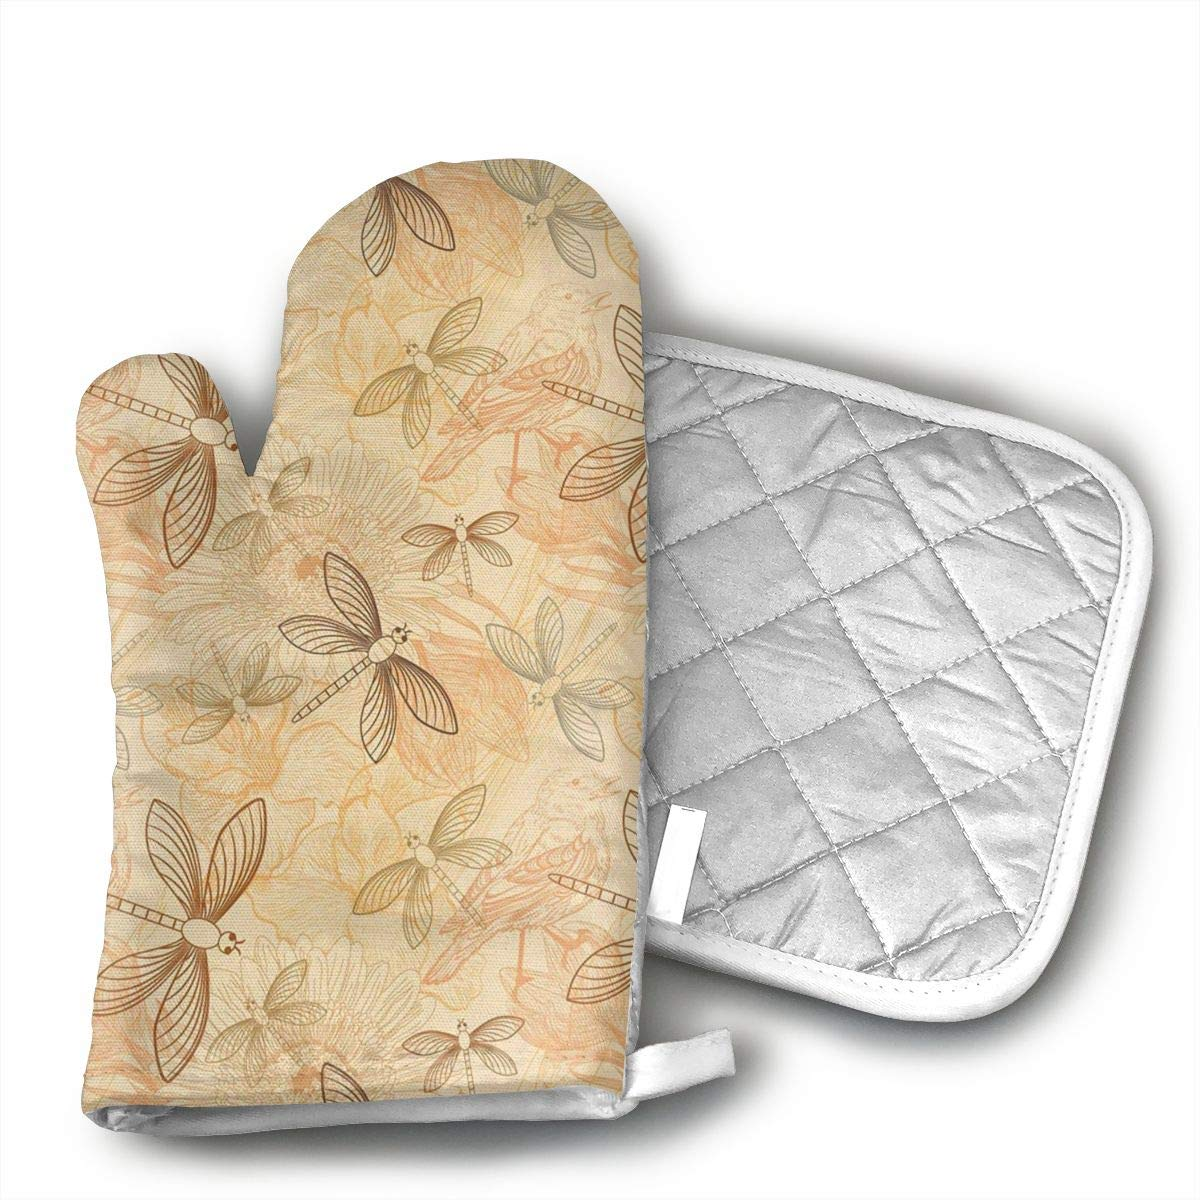 Sjiwqoj8 Vintage Birds and Dragonflies Kitchen Oven Mitts,Oven Mitts and Pot Holders,Heat Resistant with Quilted Cotton Lining,Cooking,Baking,Grilling,Barbecue